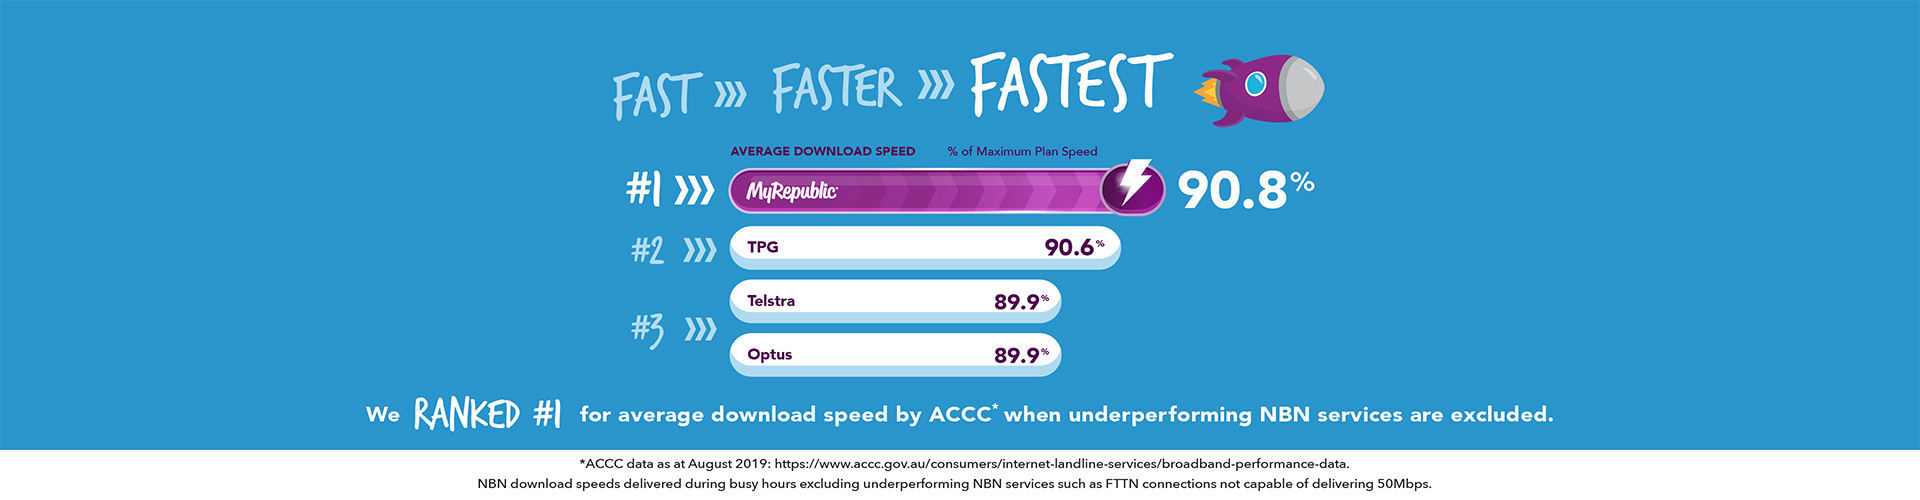 MyRepublic Australia ACCC Ranked#1 Fastest Average Download Speed